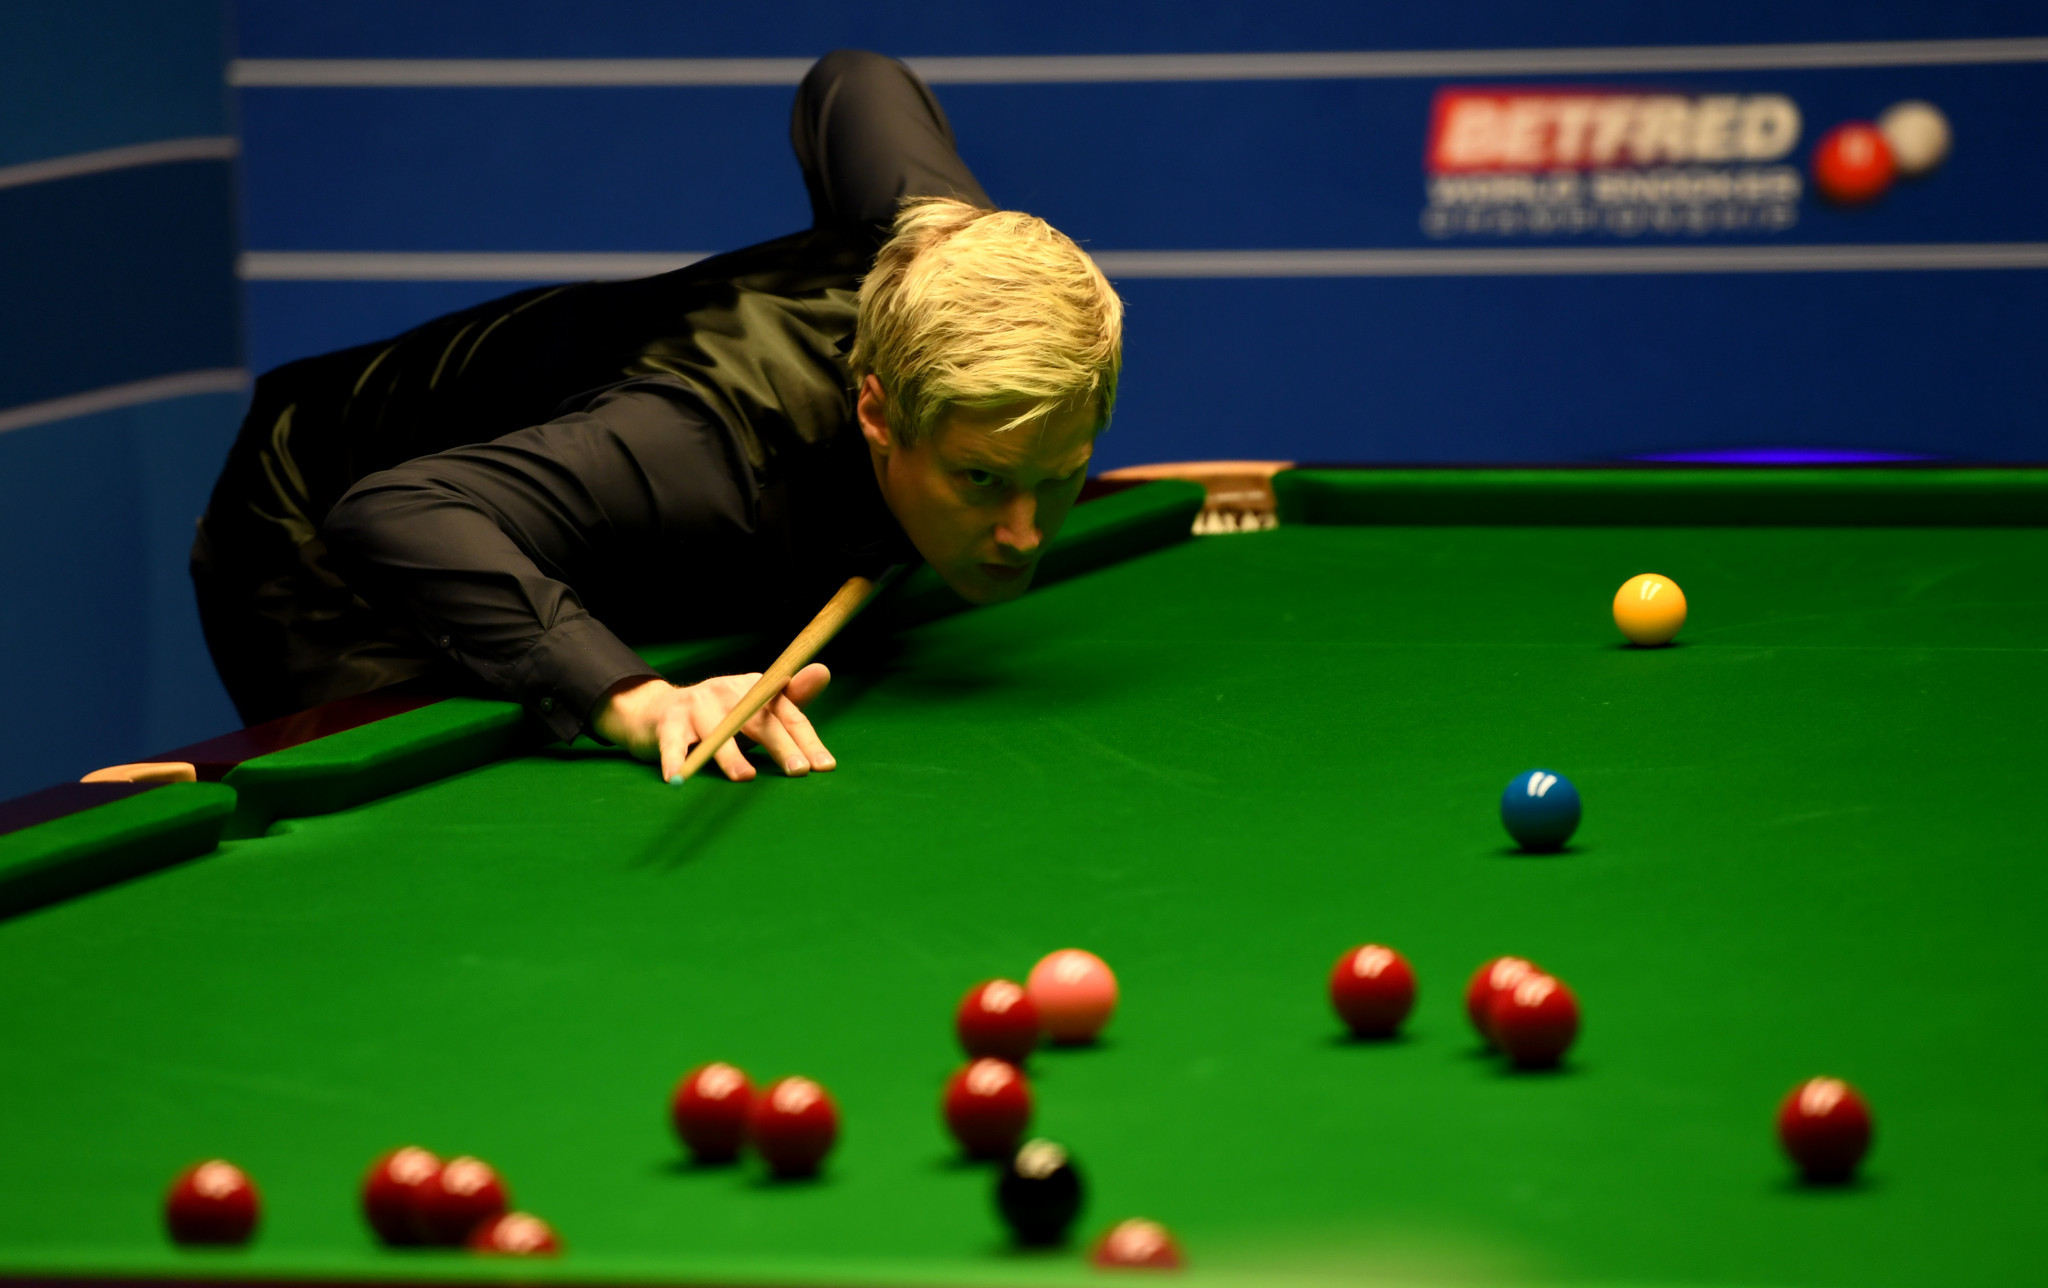 Three last 16 matches evenly poised after eventful day at World Snooker Championship